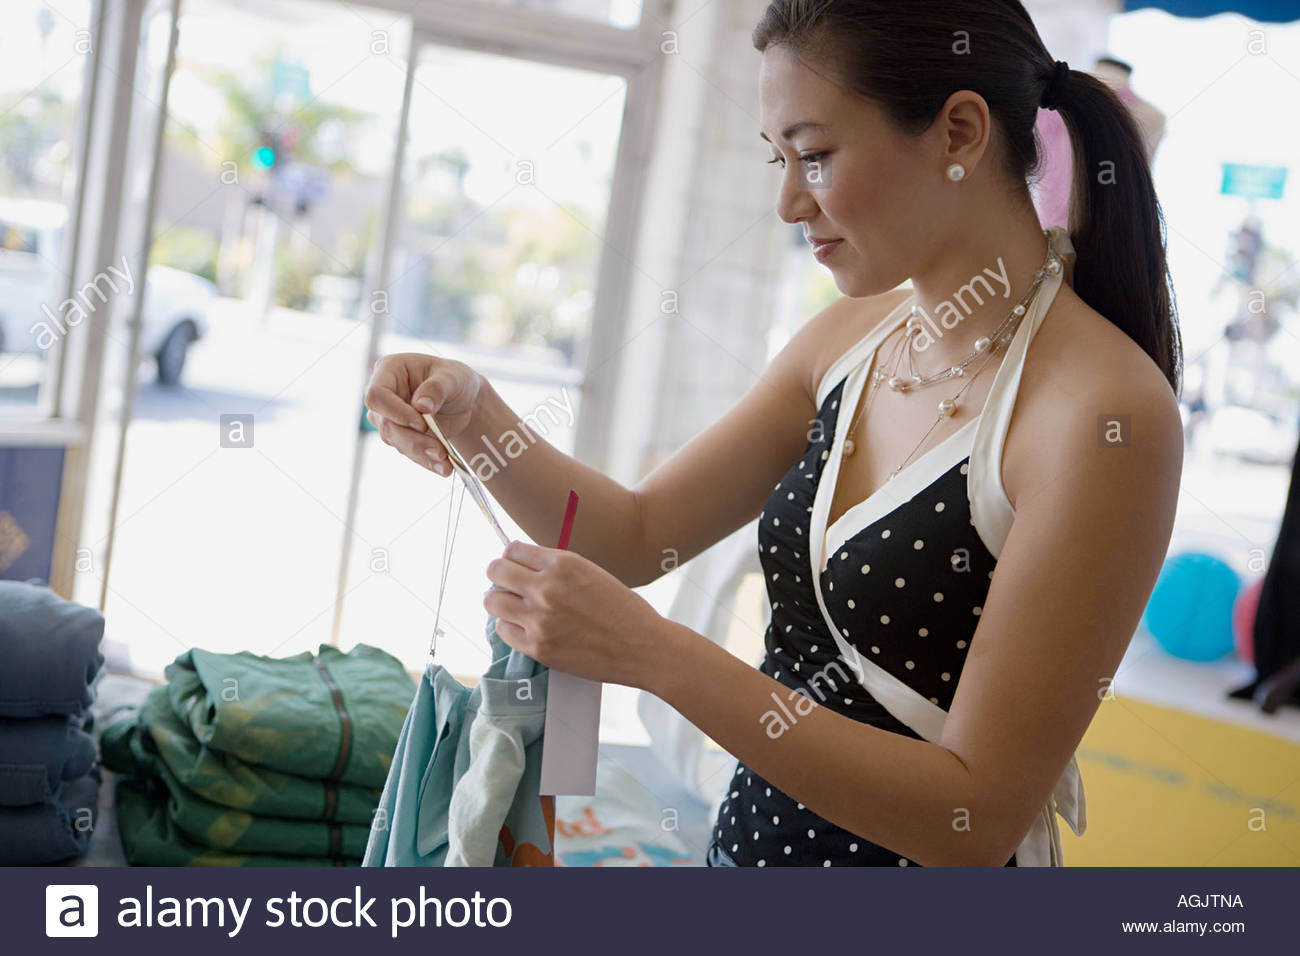 Woman looking at label on clothing - Stock Image